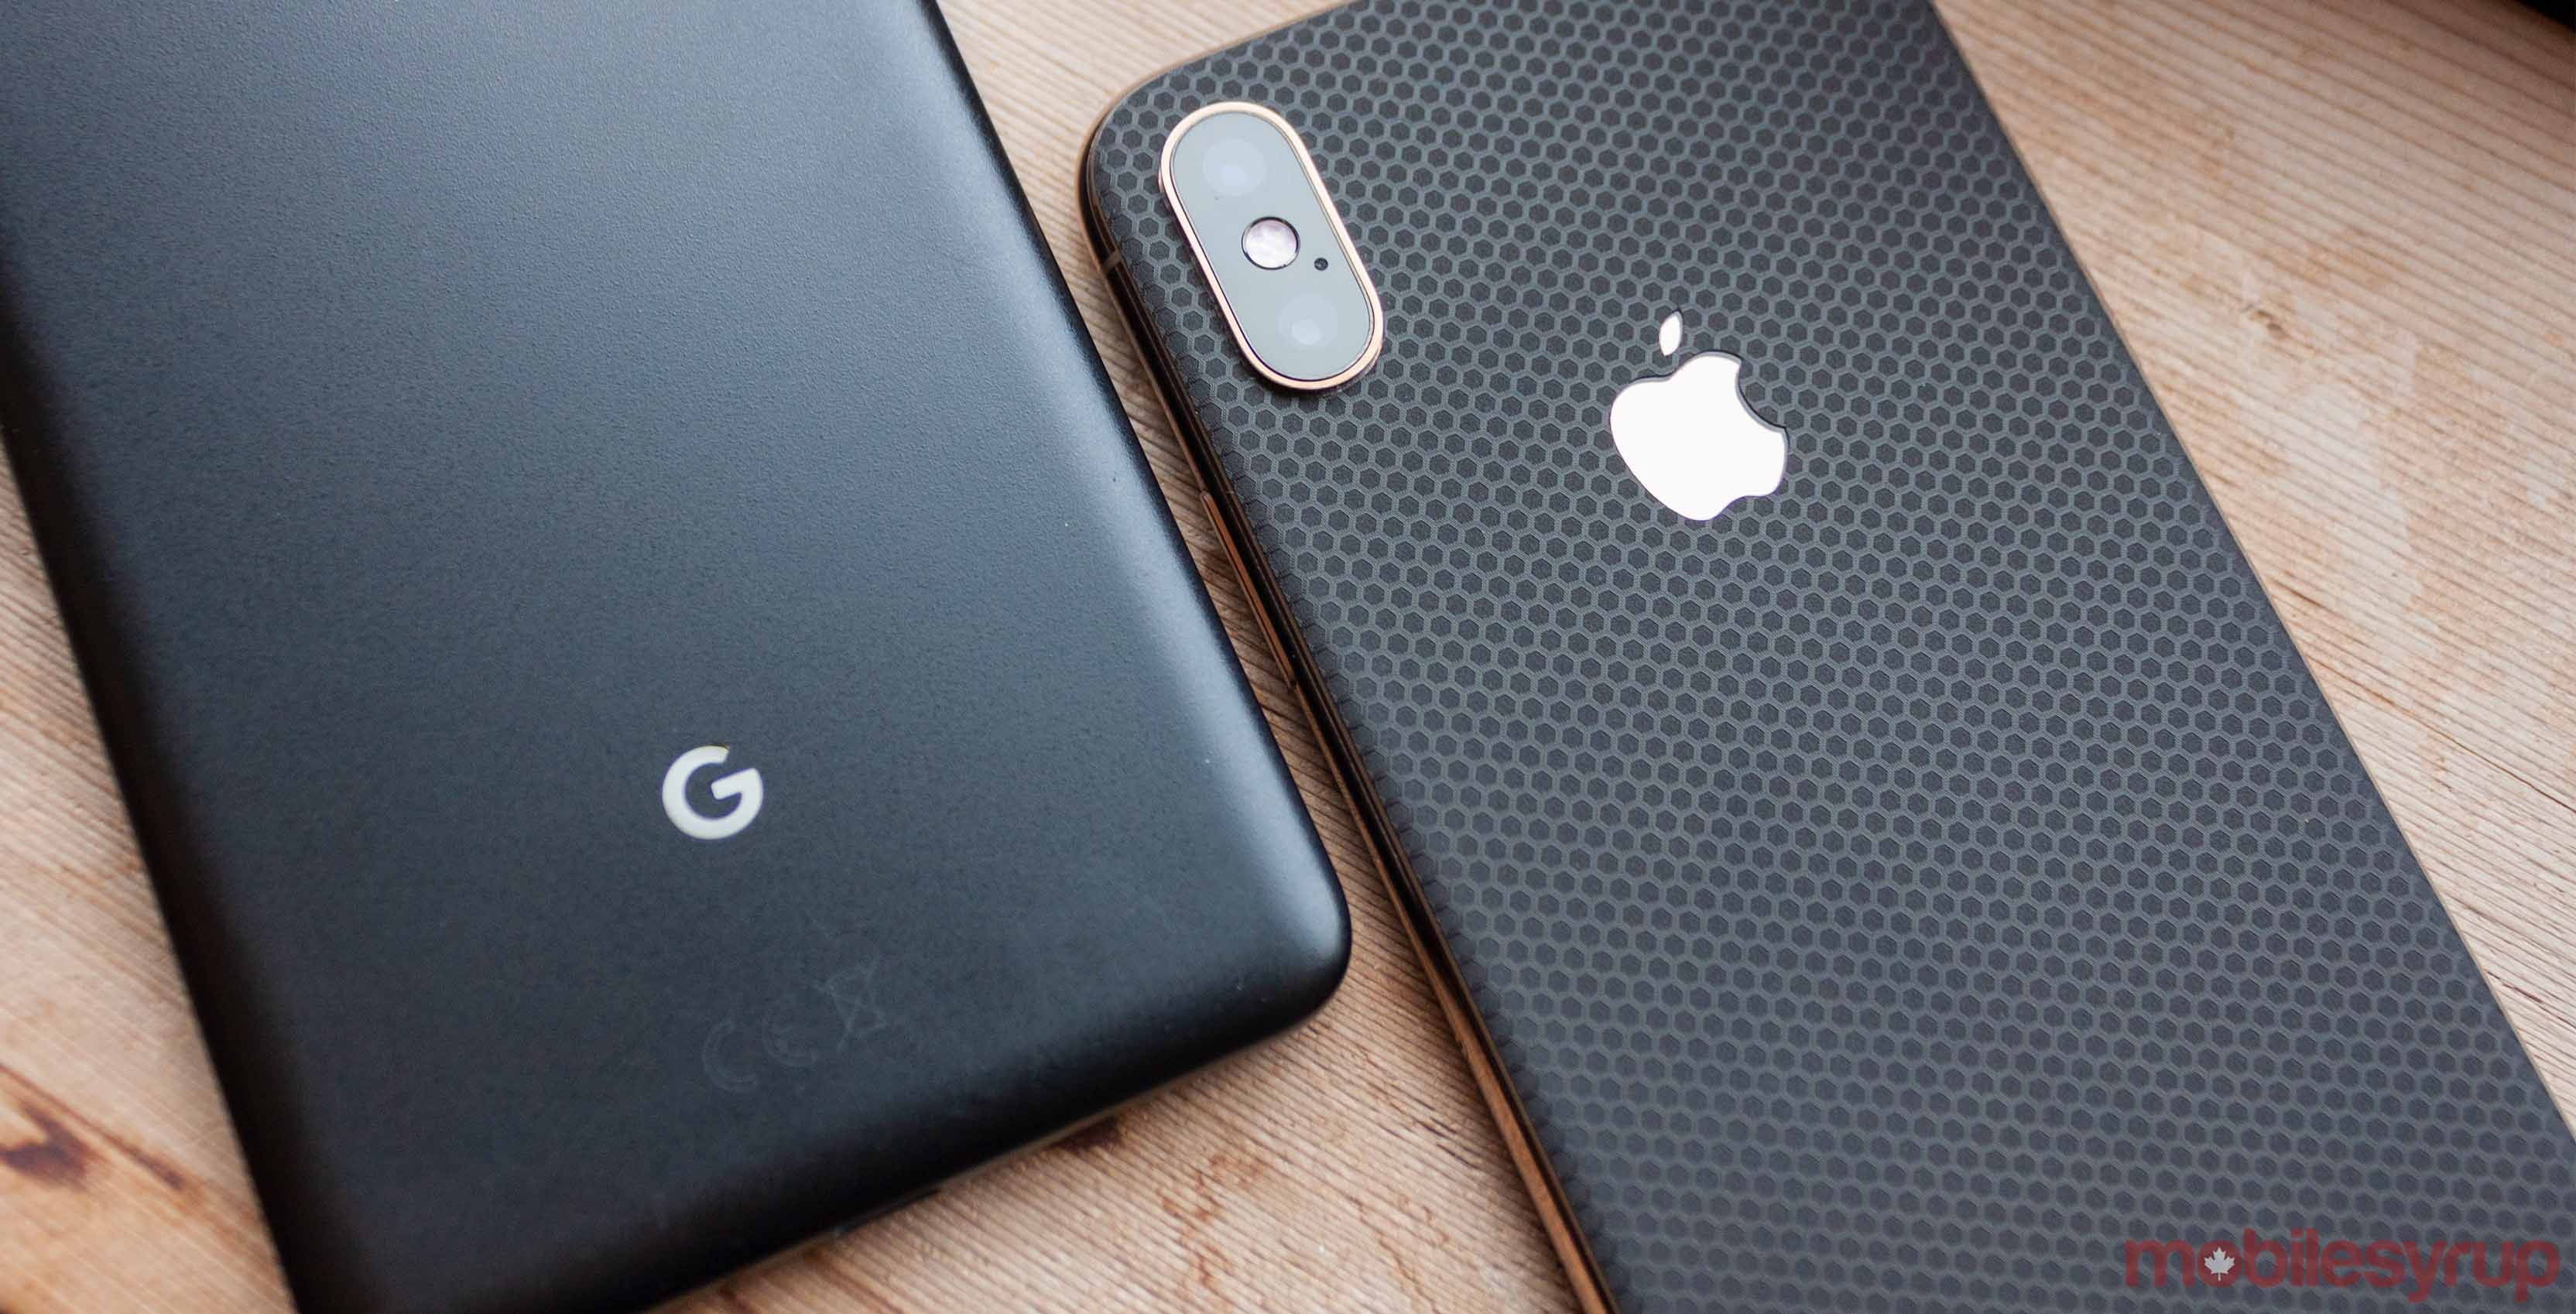 Pixel 2 XL and iPhone XS logo bright